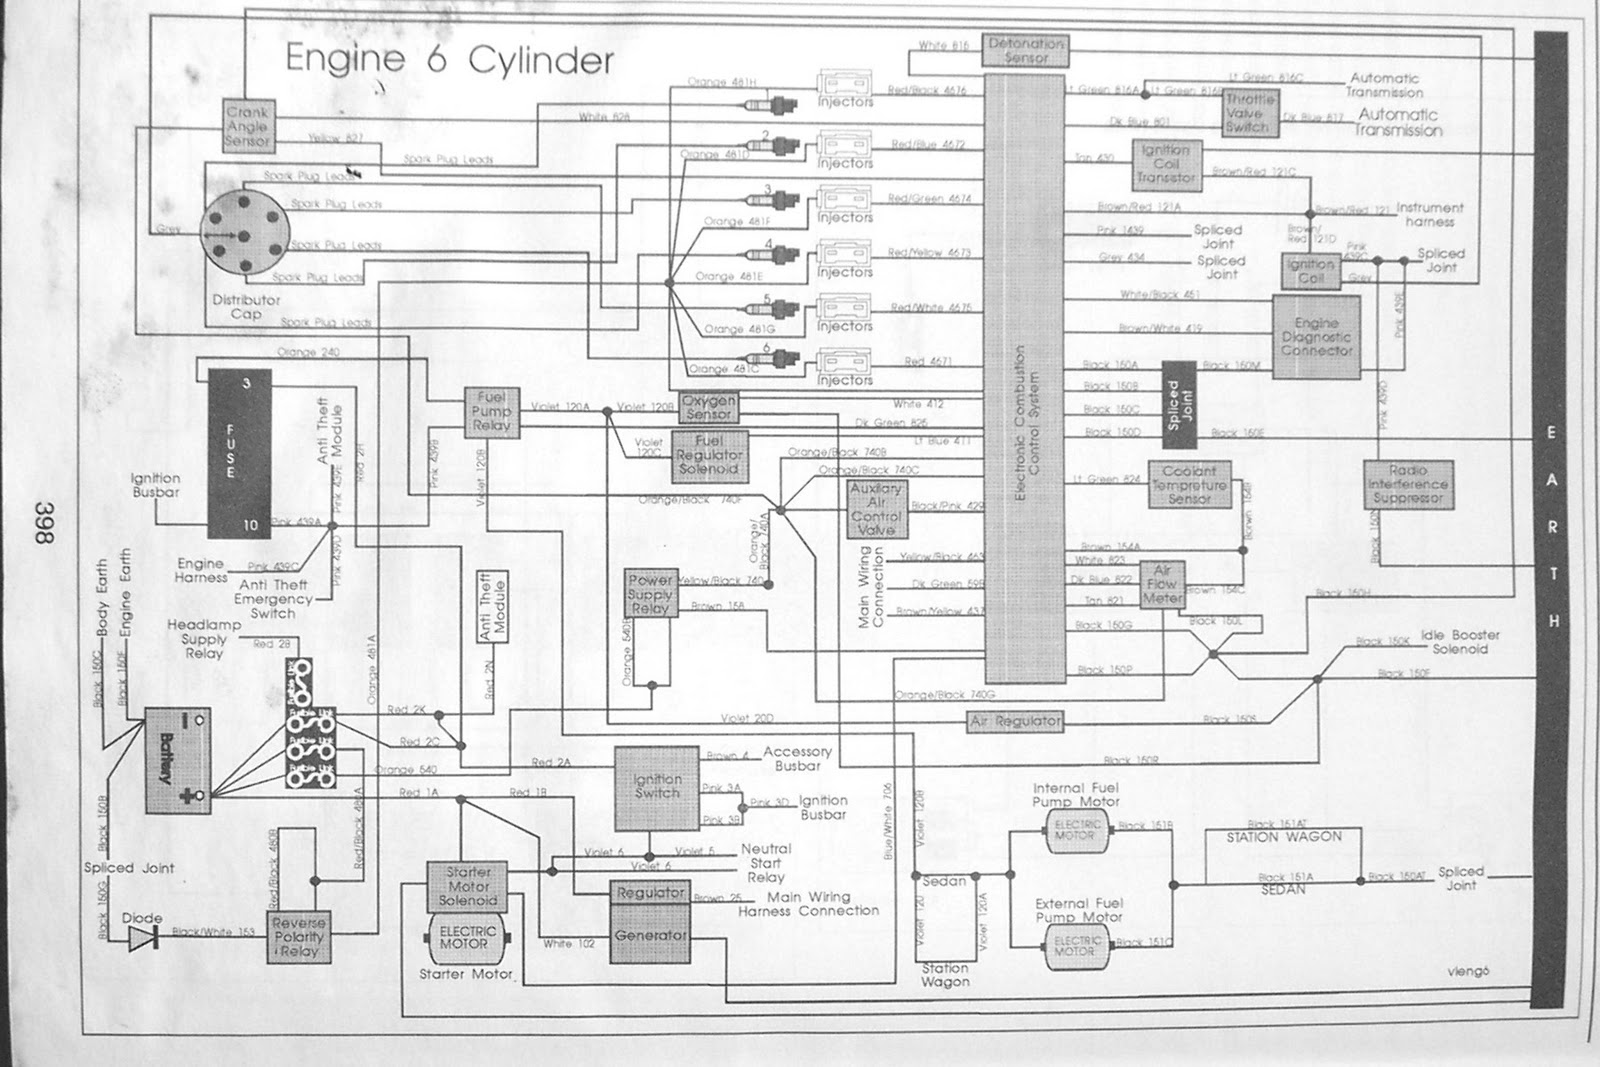 14b rb30 wiring diagrams 280zx project vl wiring diagram at highcare.asia